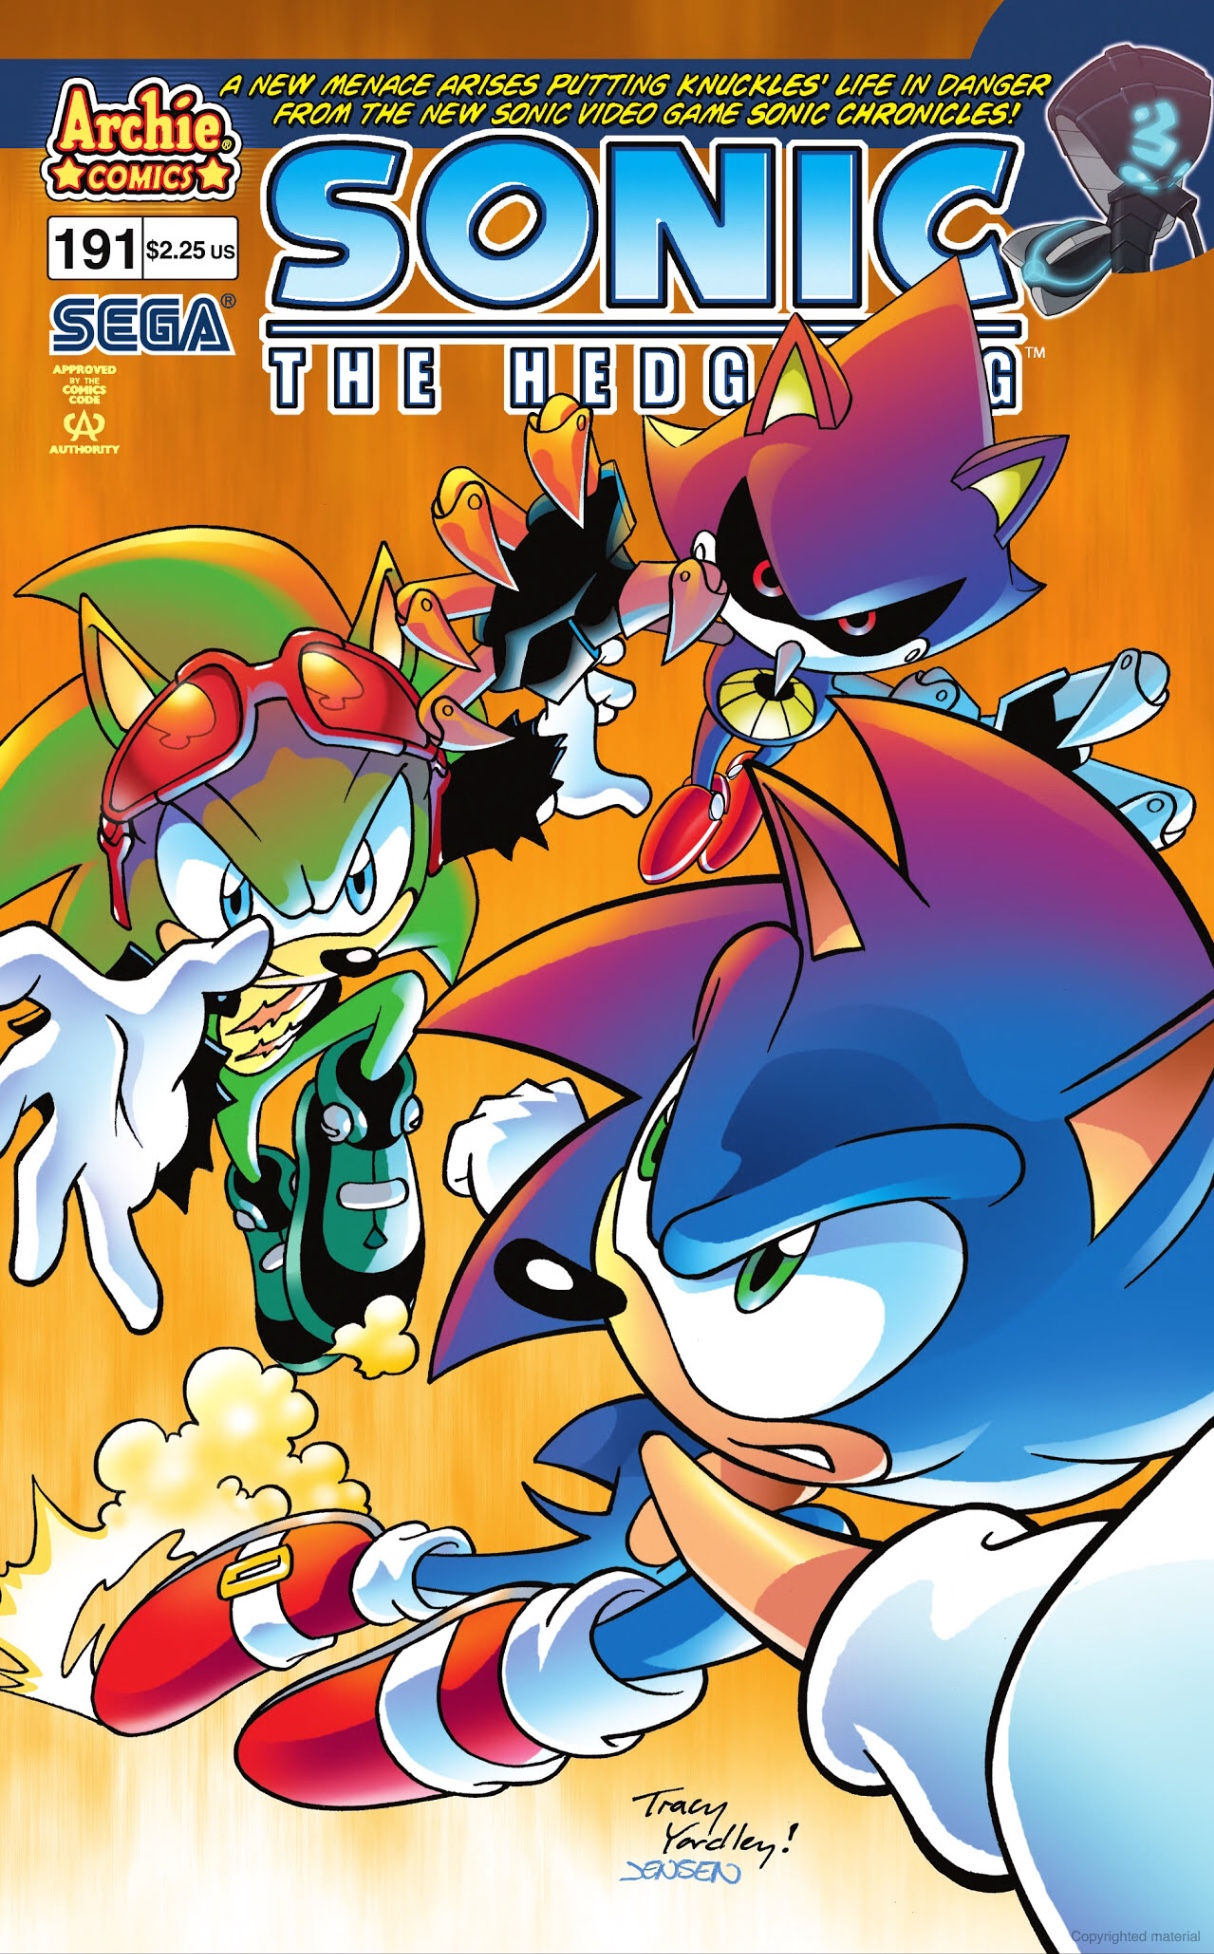 Archie Sonic the Hedgehog Issue 191